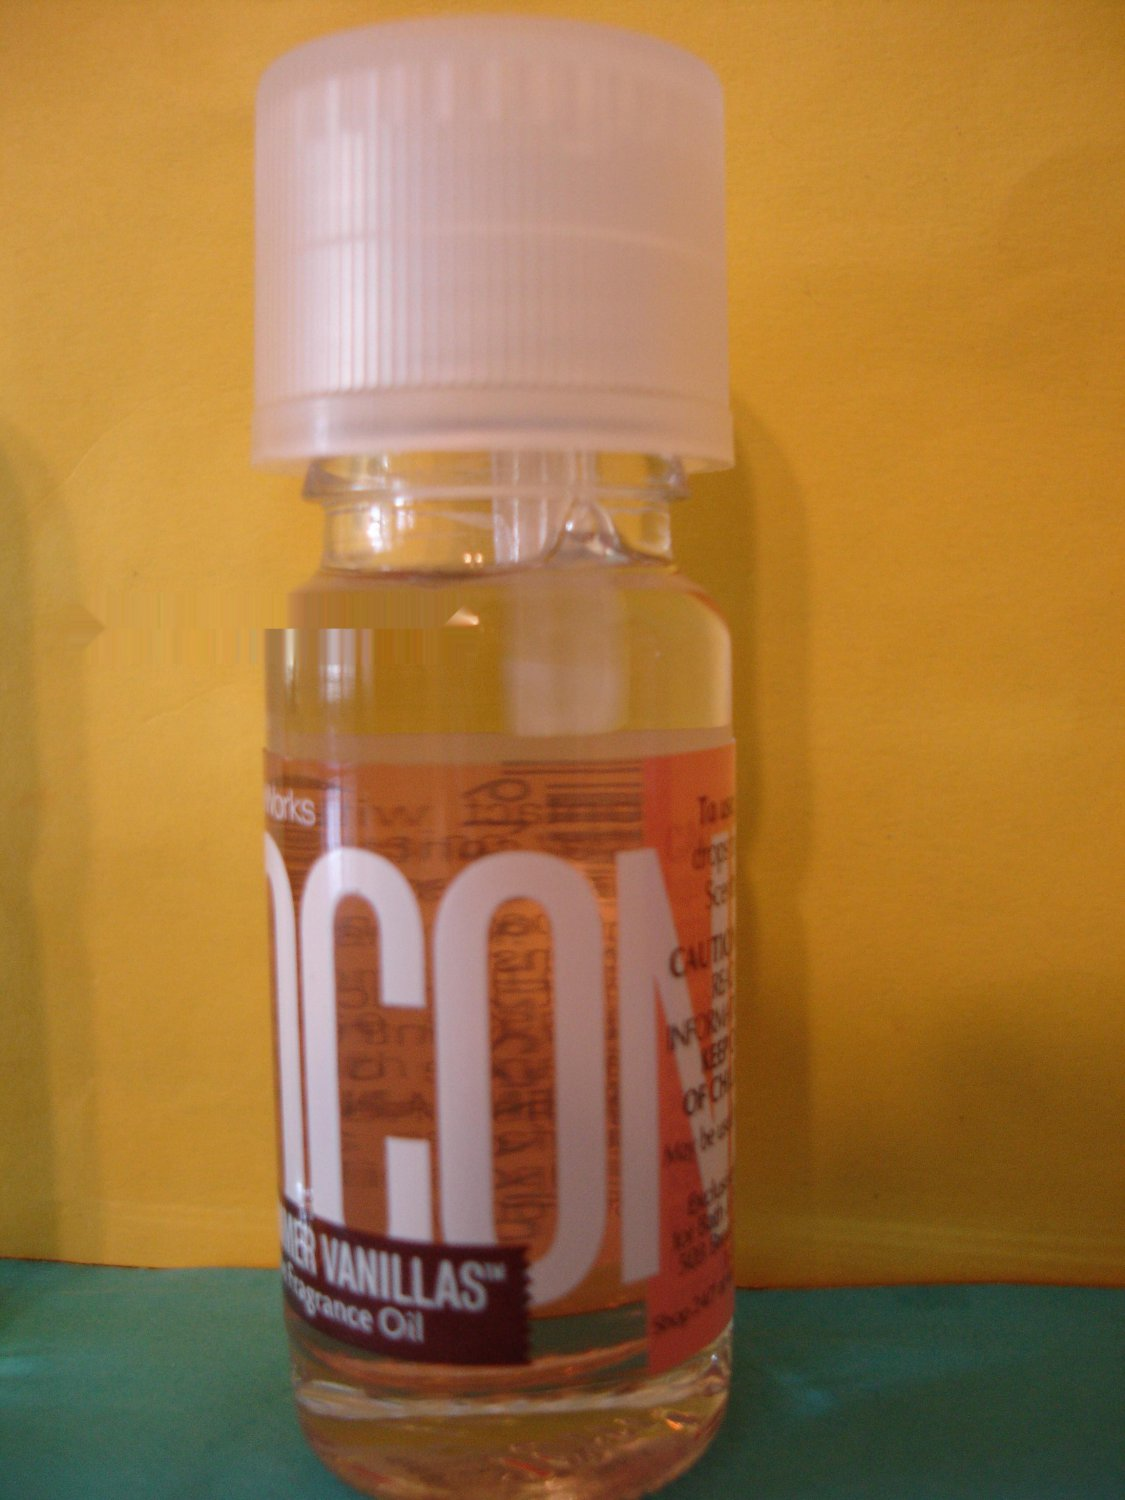 Bath body works coconut vanilla home fragrance oil for Bath and body works scents best seller